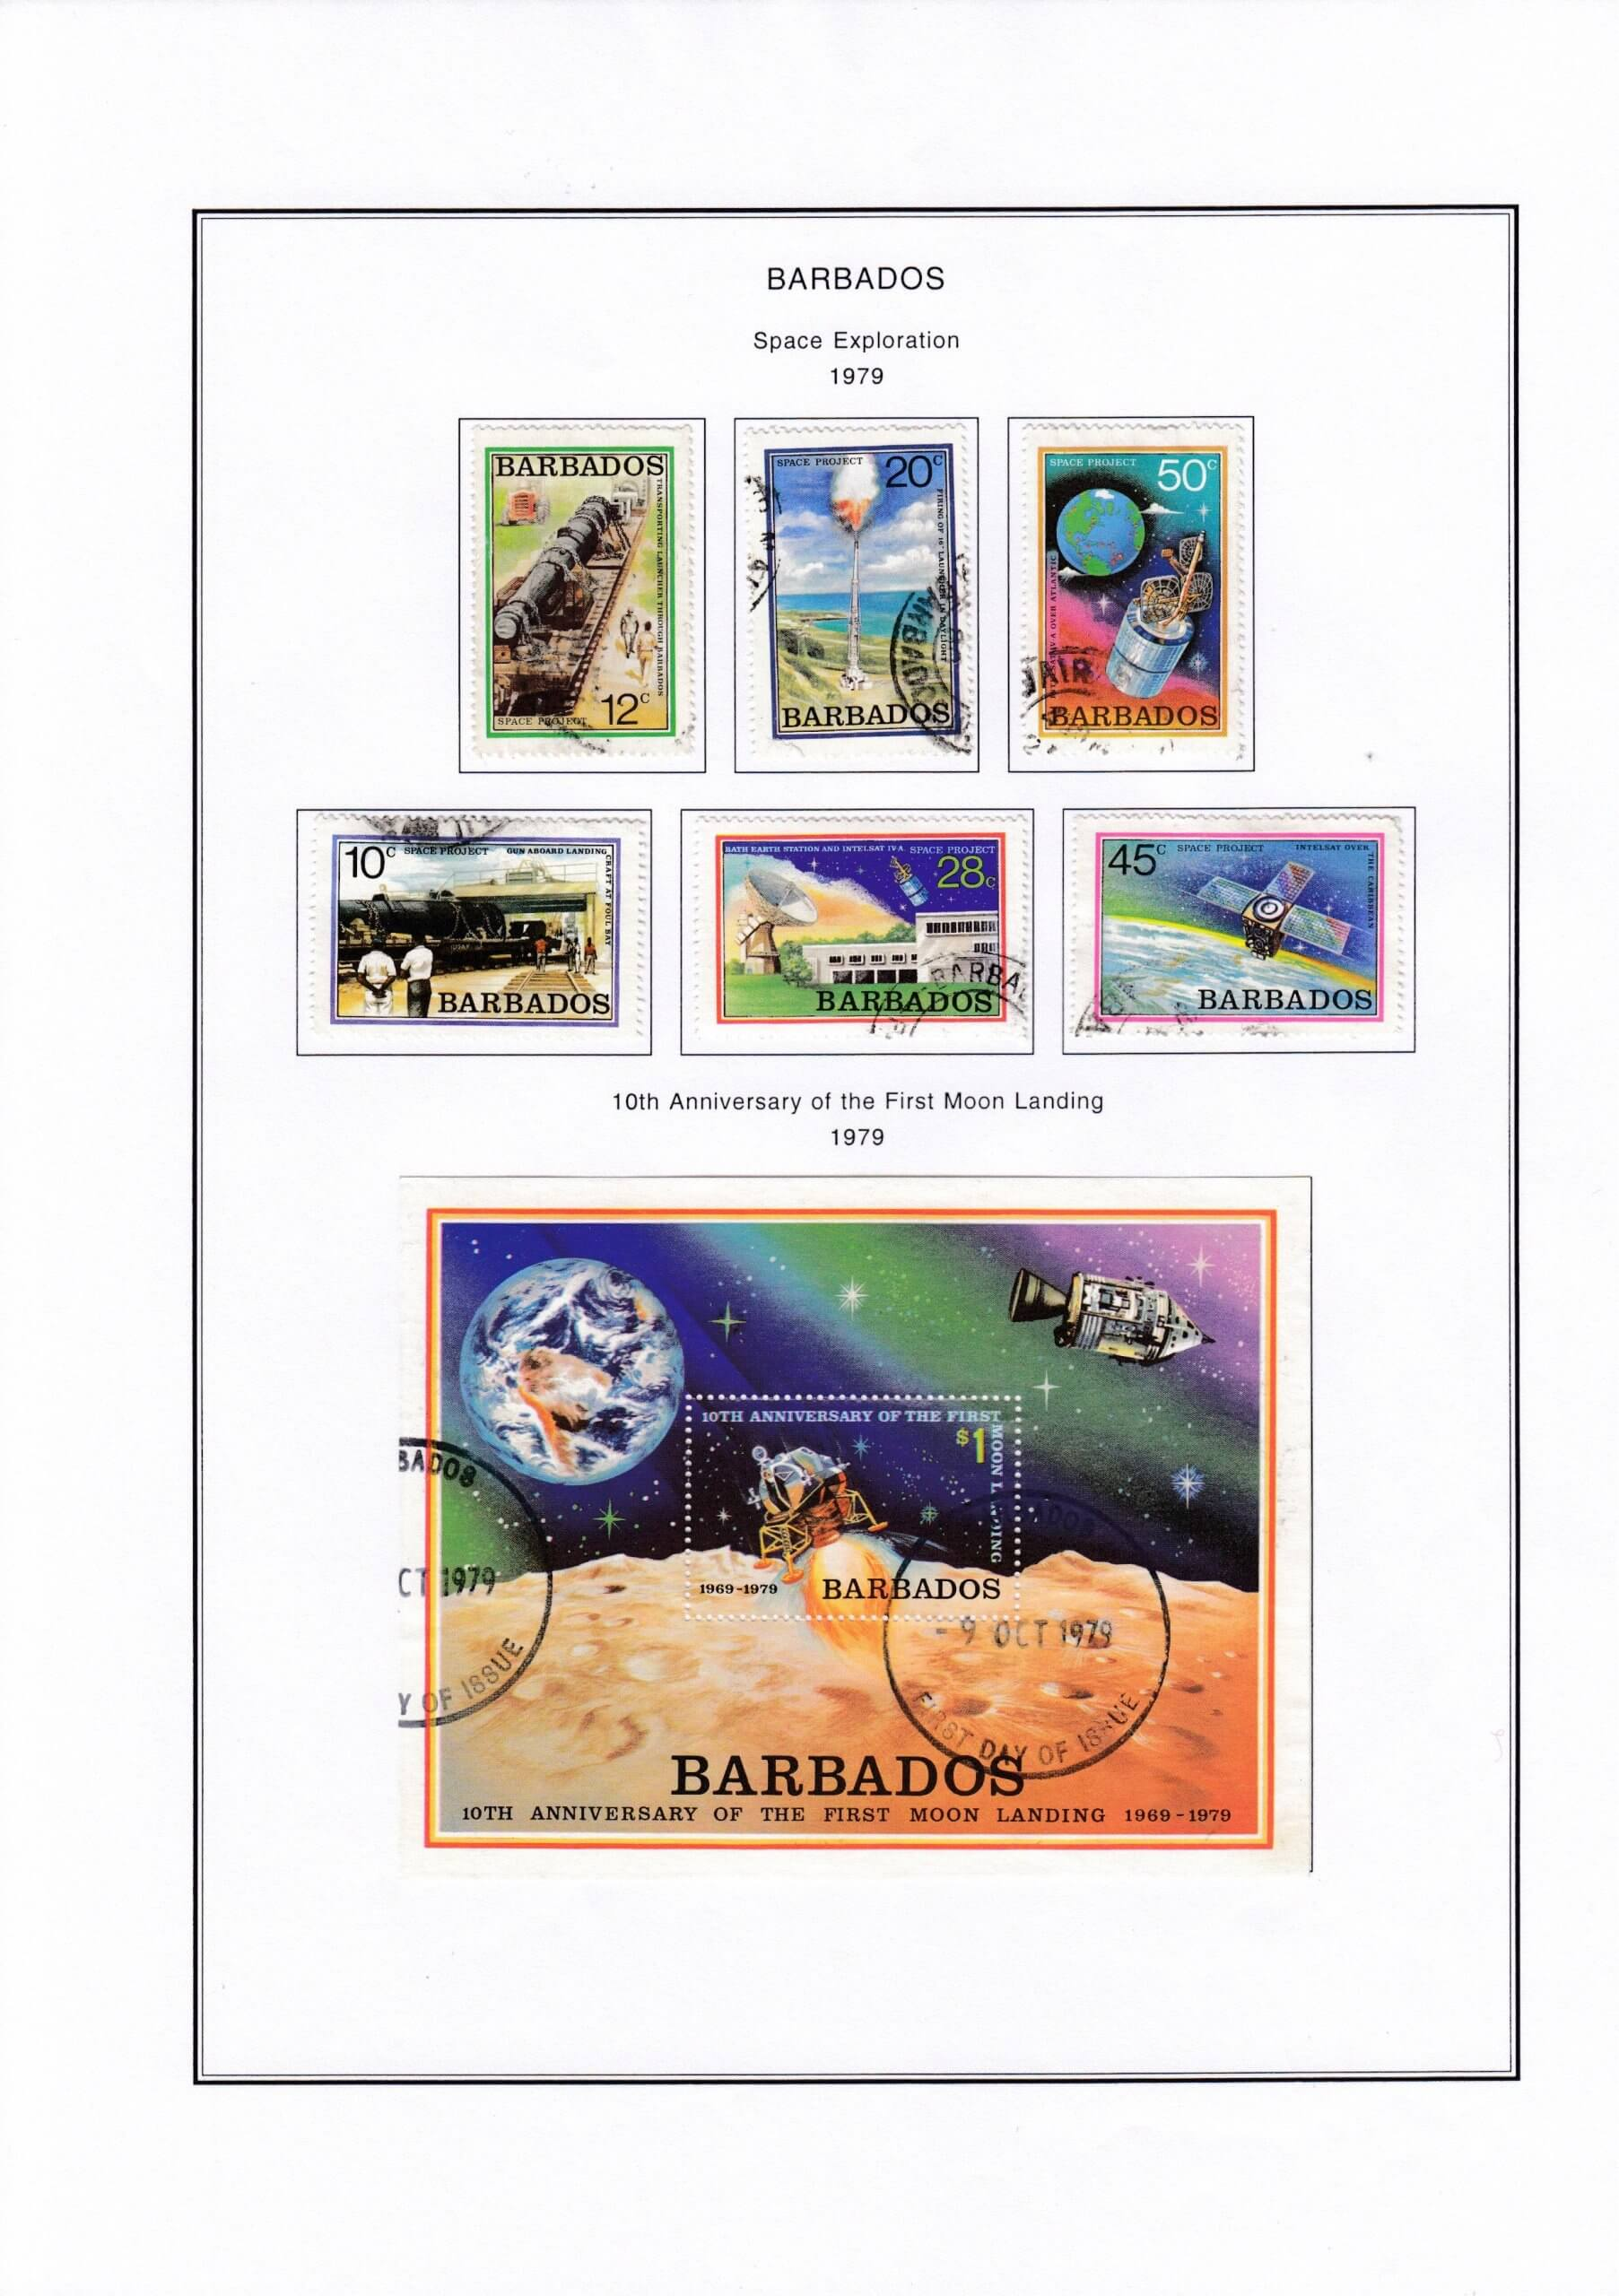 Using Steiner Pages to display your used Barbados stamps